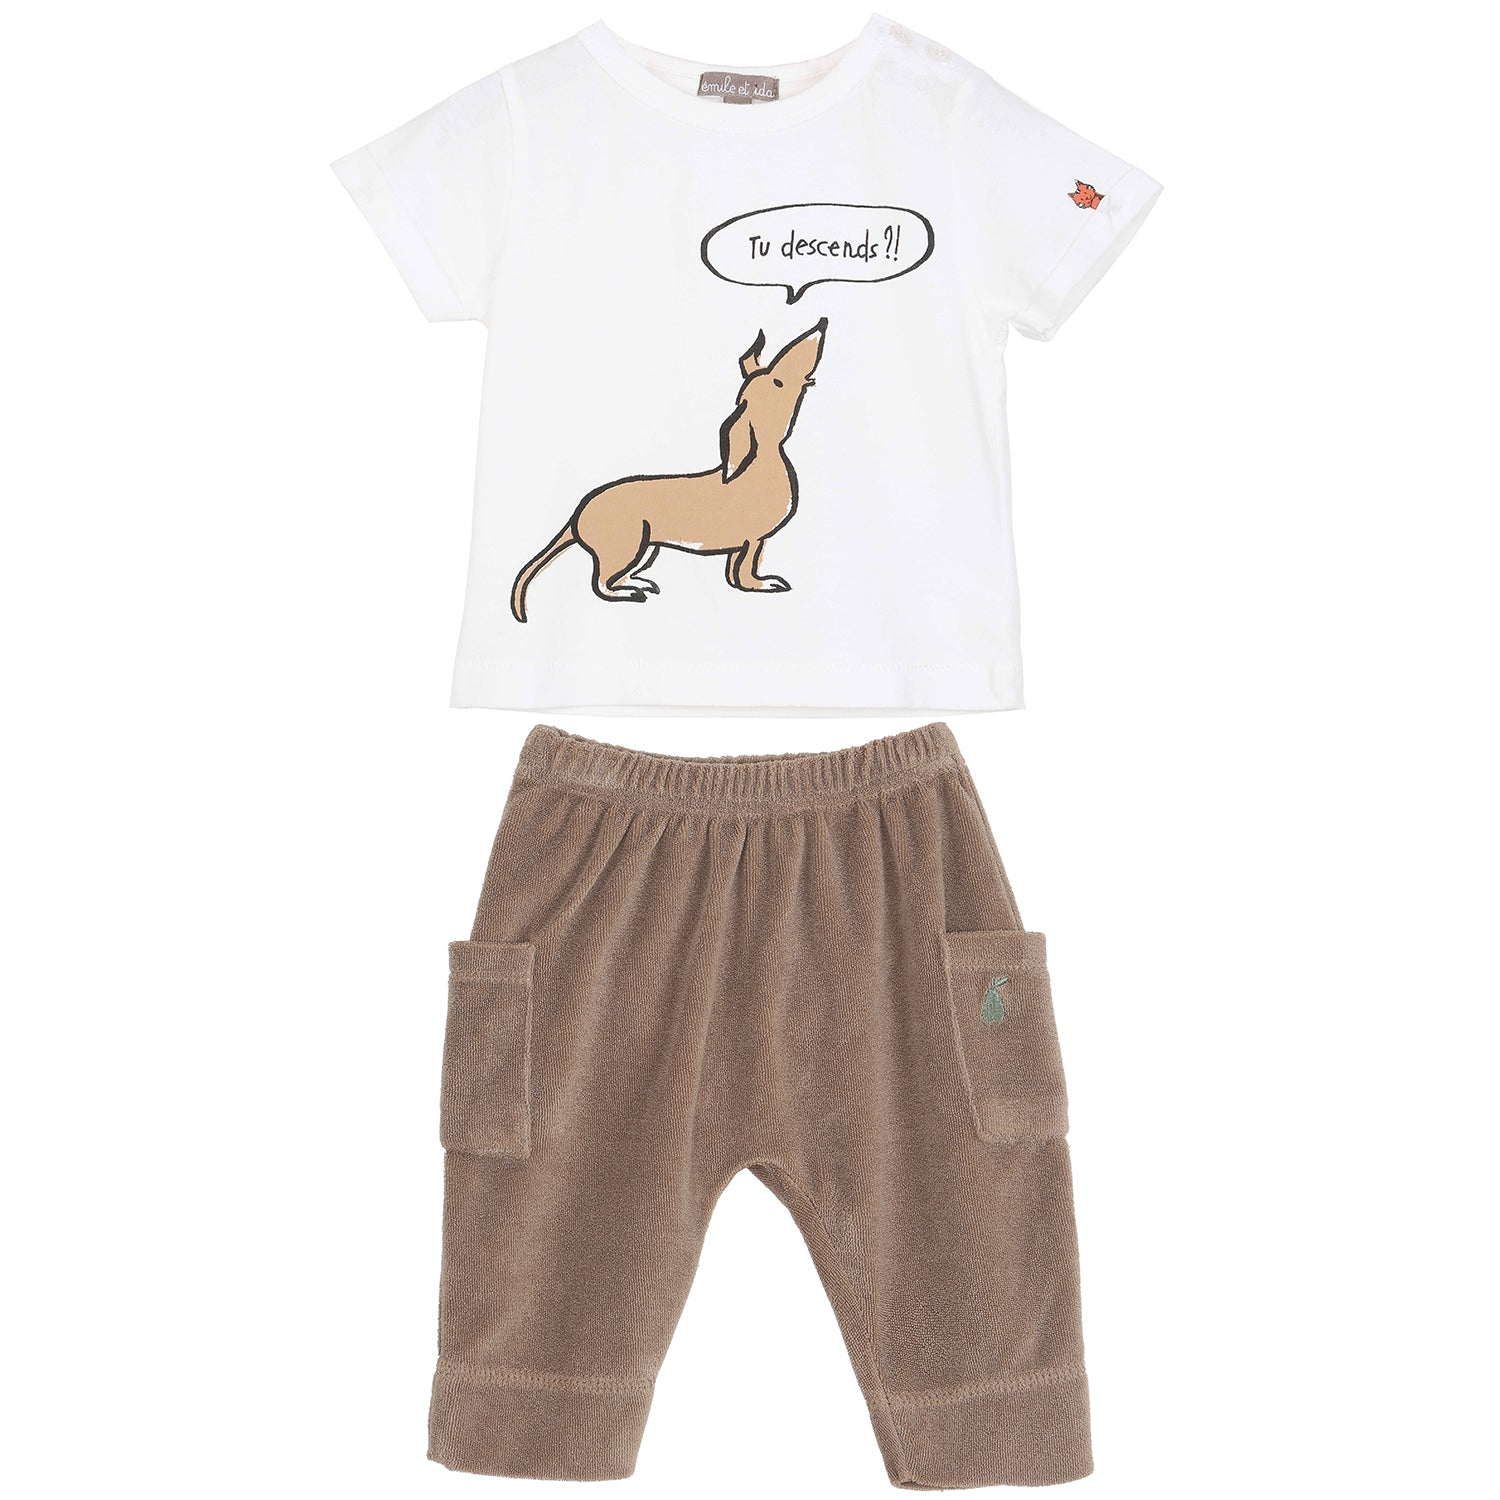 yoya, kids, baby, boys, girls, emile et ida, graphic print, dog, t-shirt, terry cloth, side pocket, pull on, pants, outfit, set